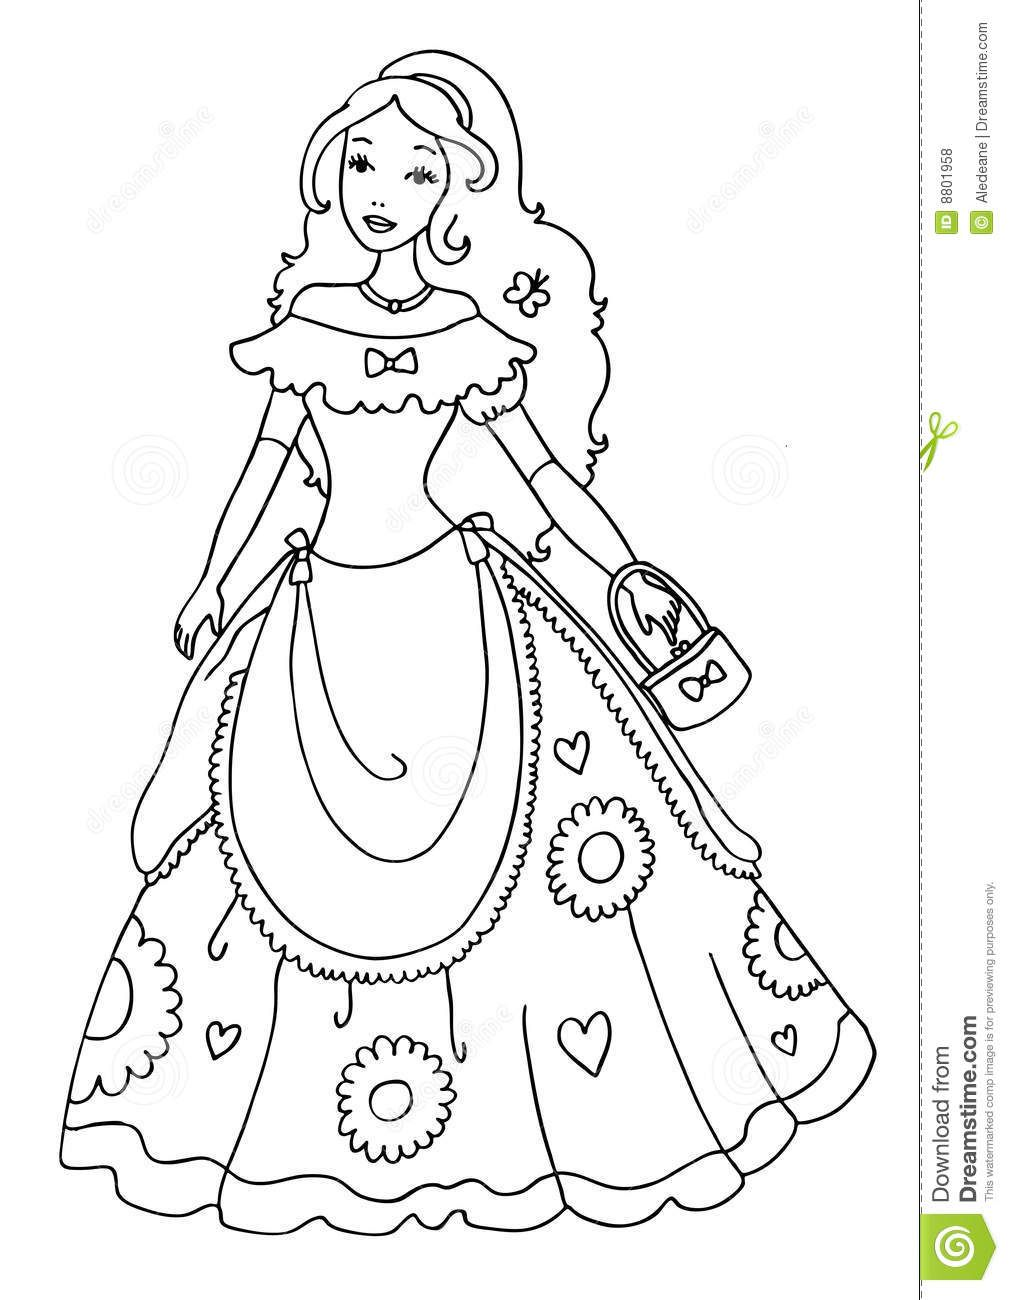 princess coloring pages free - Free Coloring Pages Princess